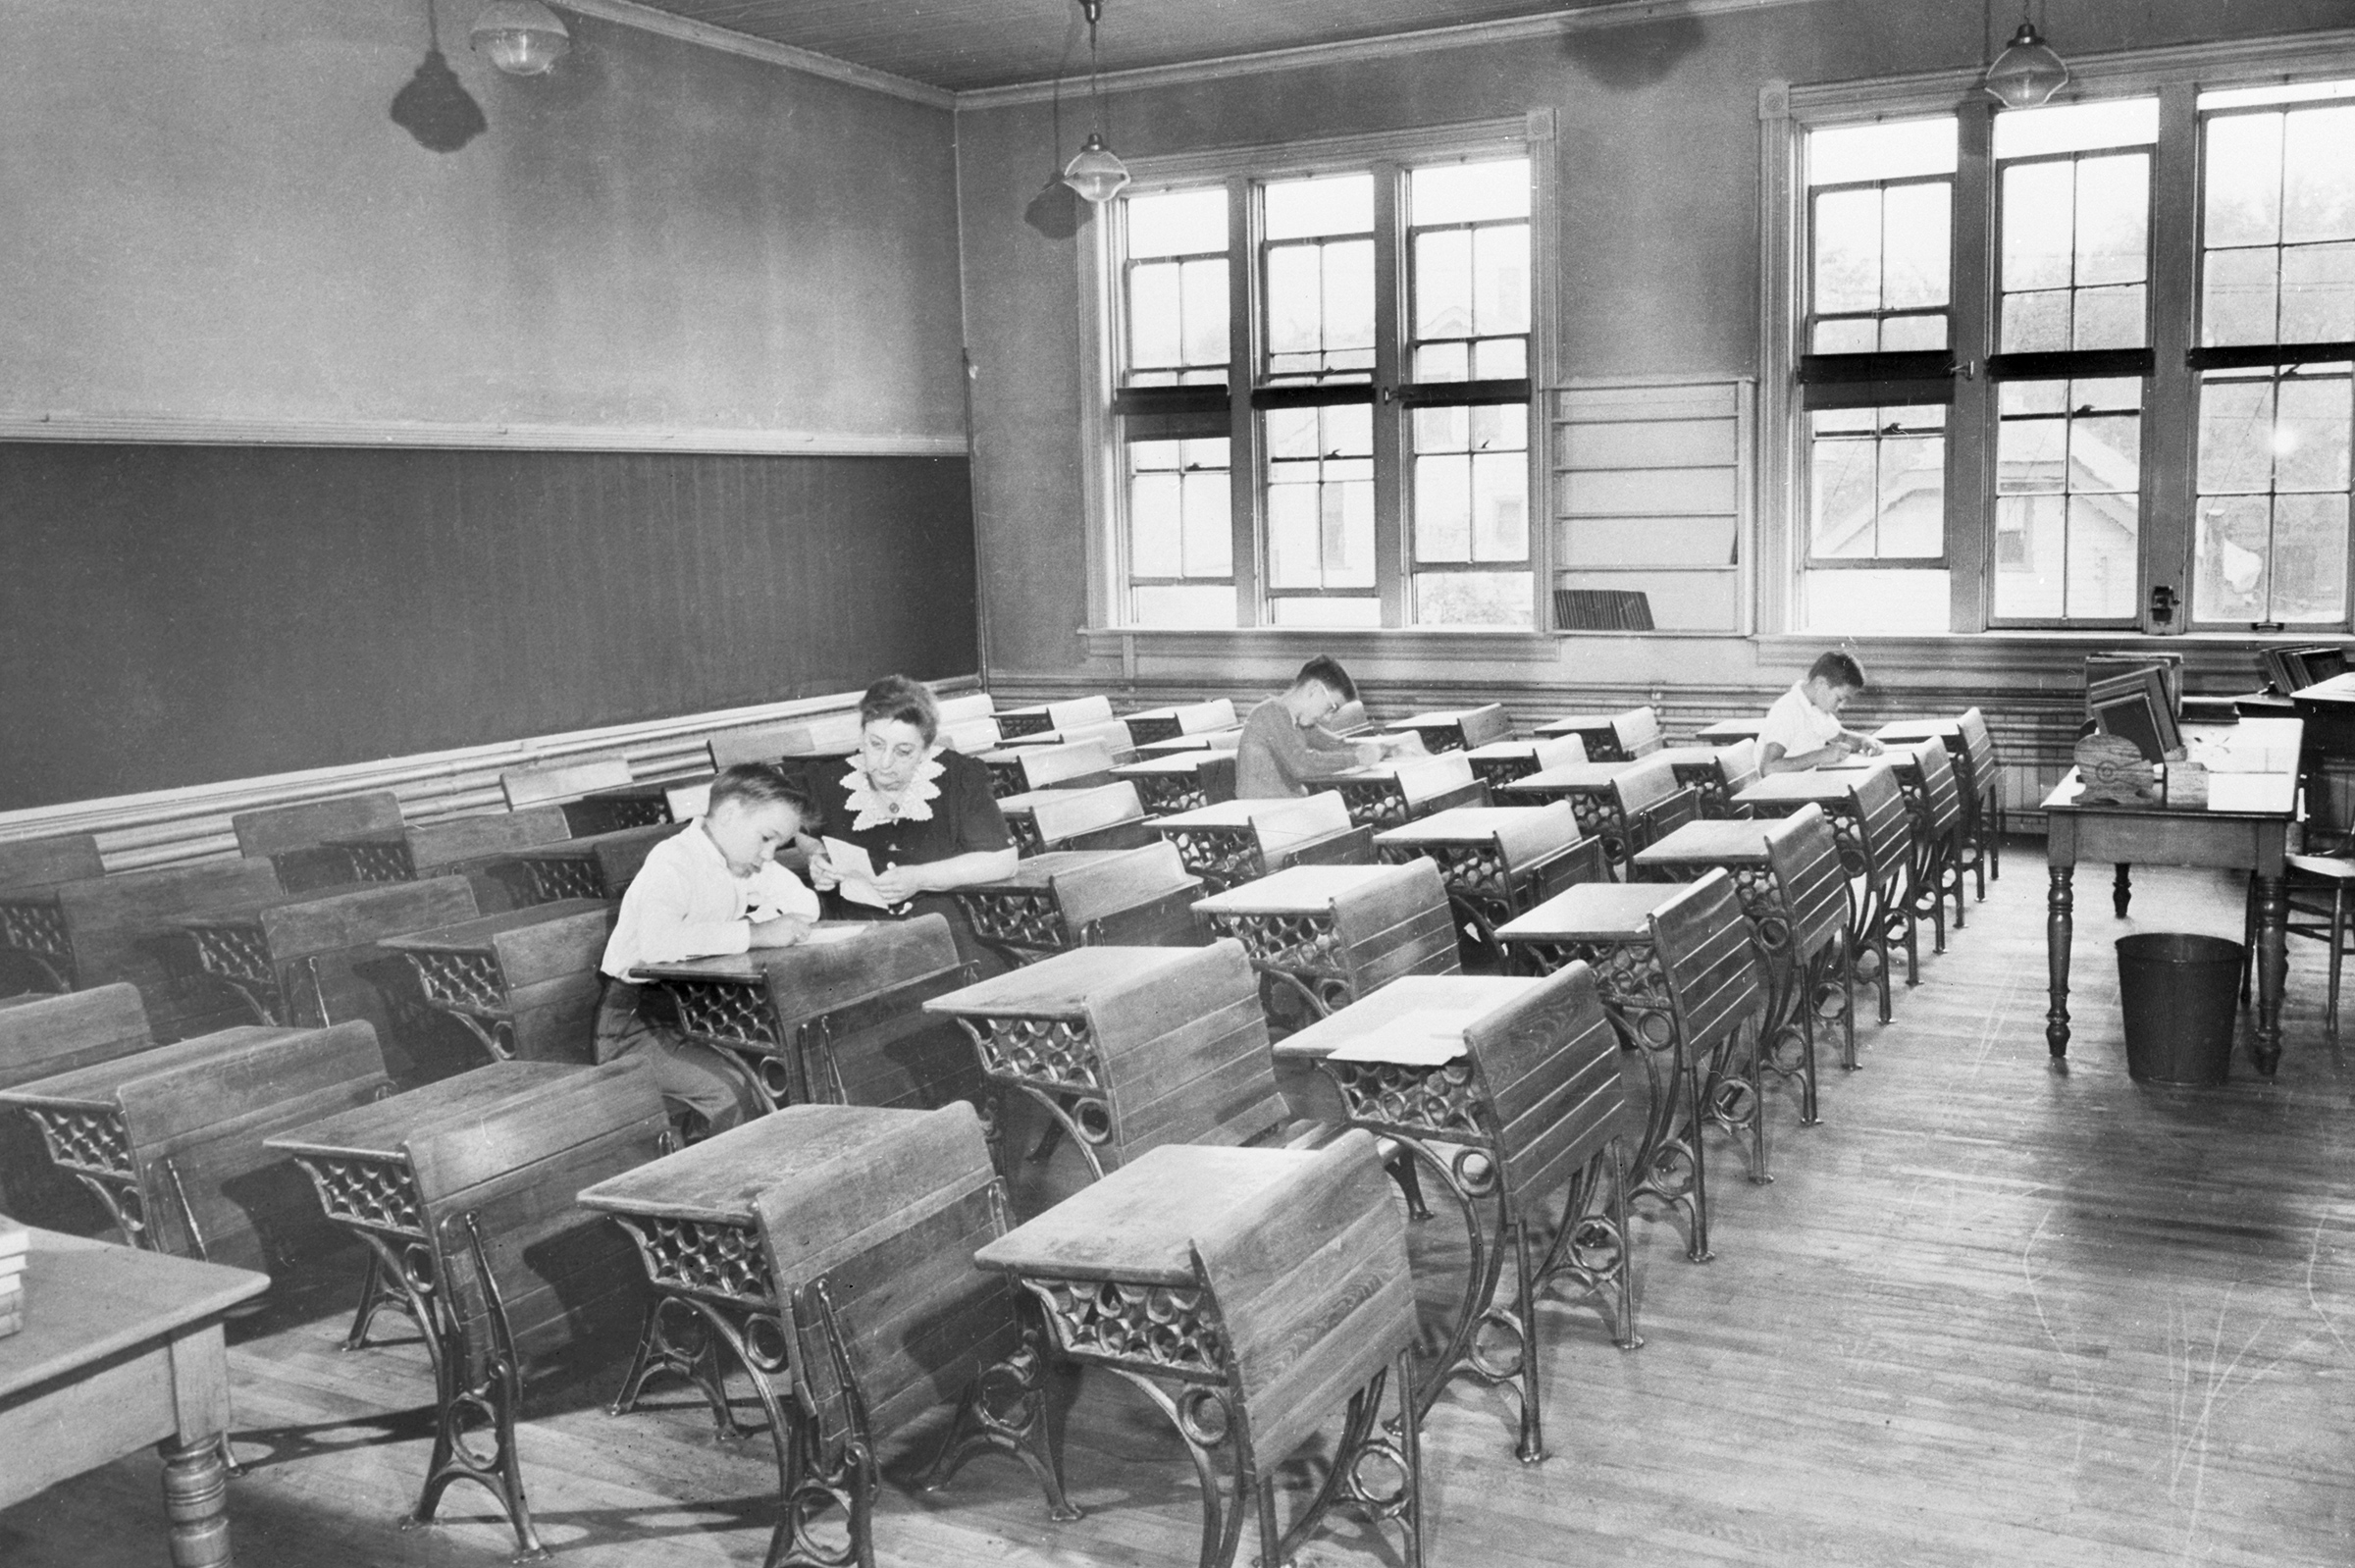 Milwaukee sixth grade school teachers faced row upon row of empty seats when school opened on Sept. 6, 1944, due to the polio quarantine in effect